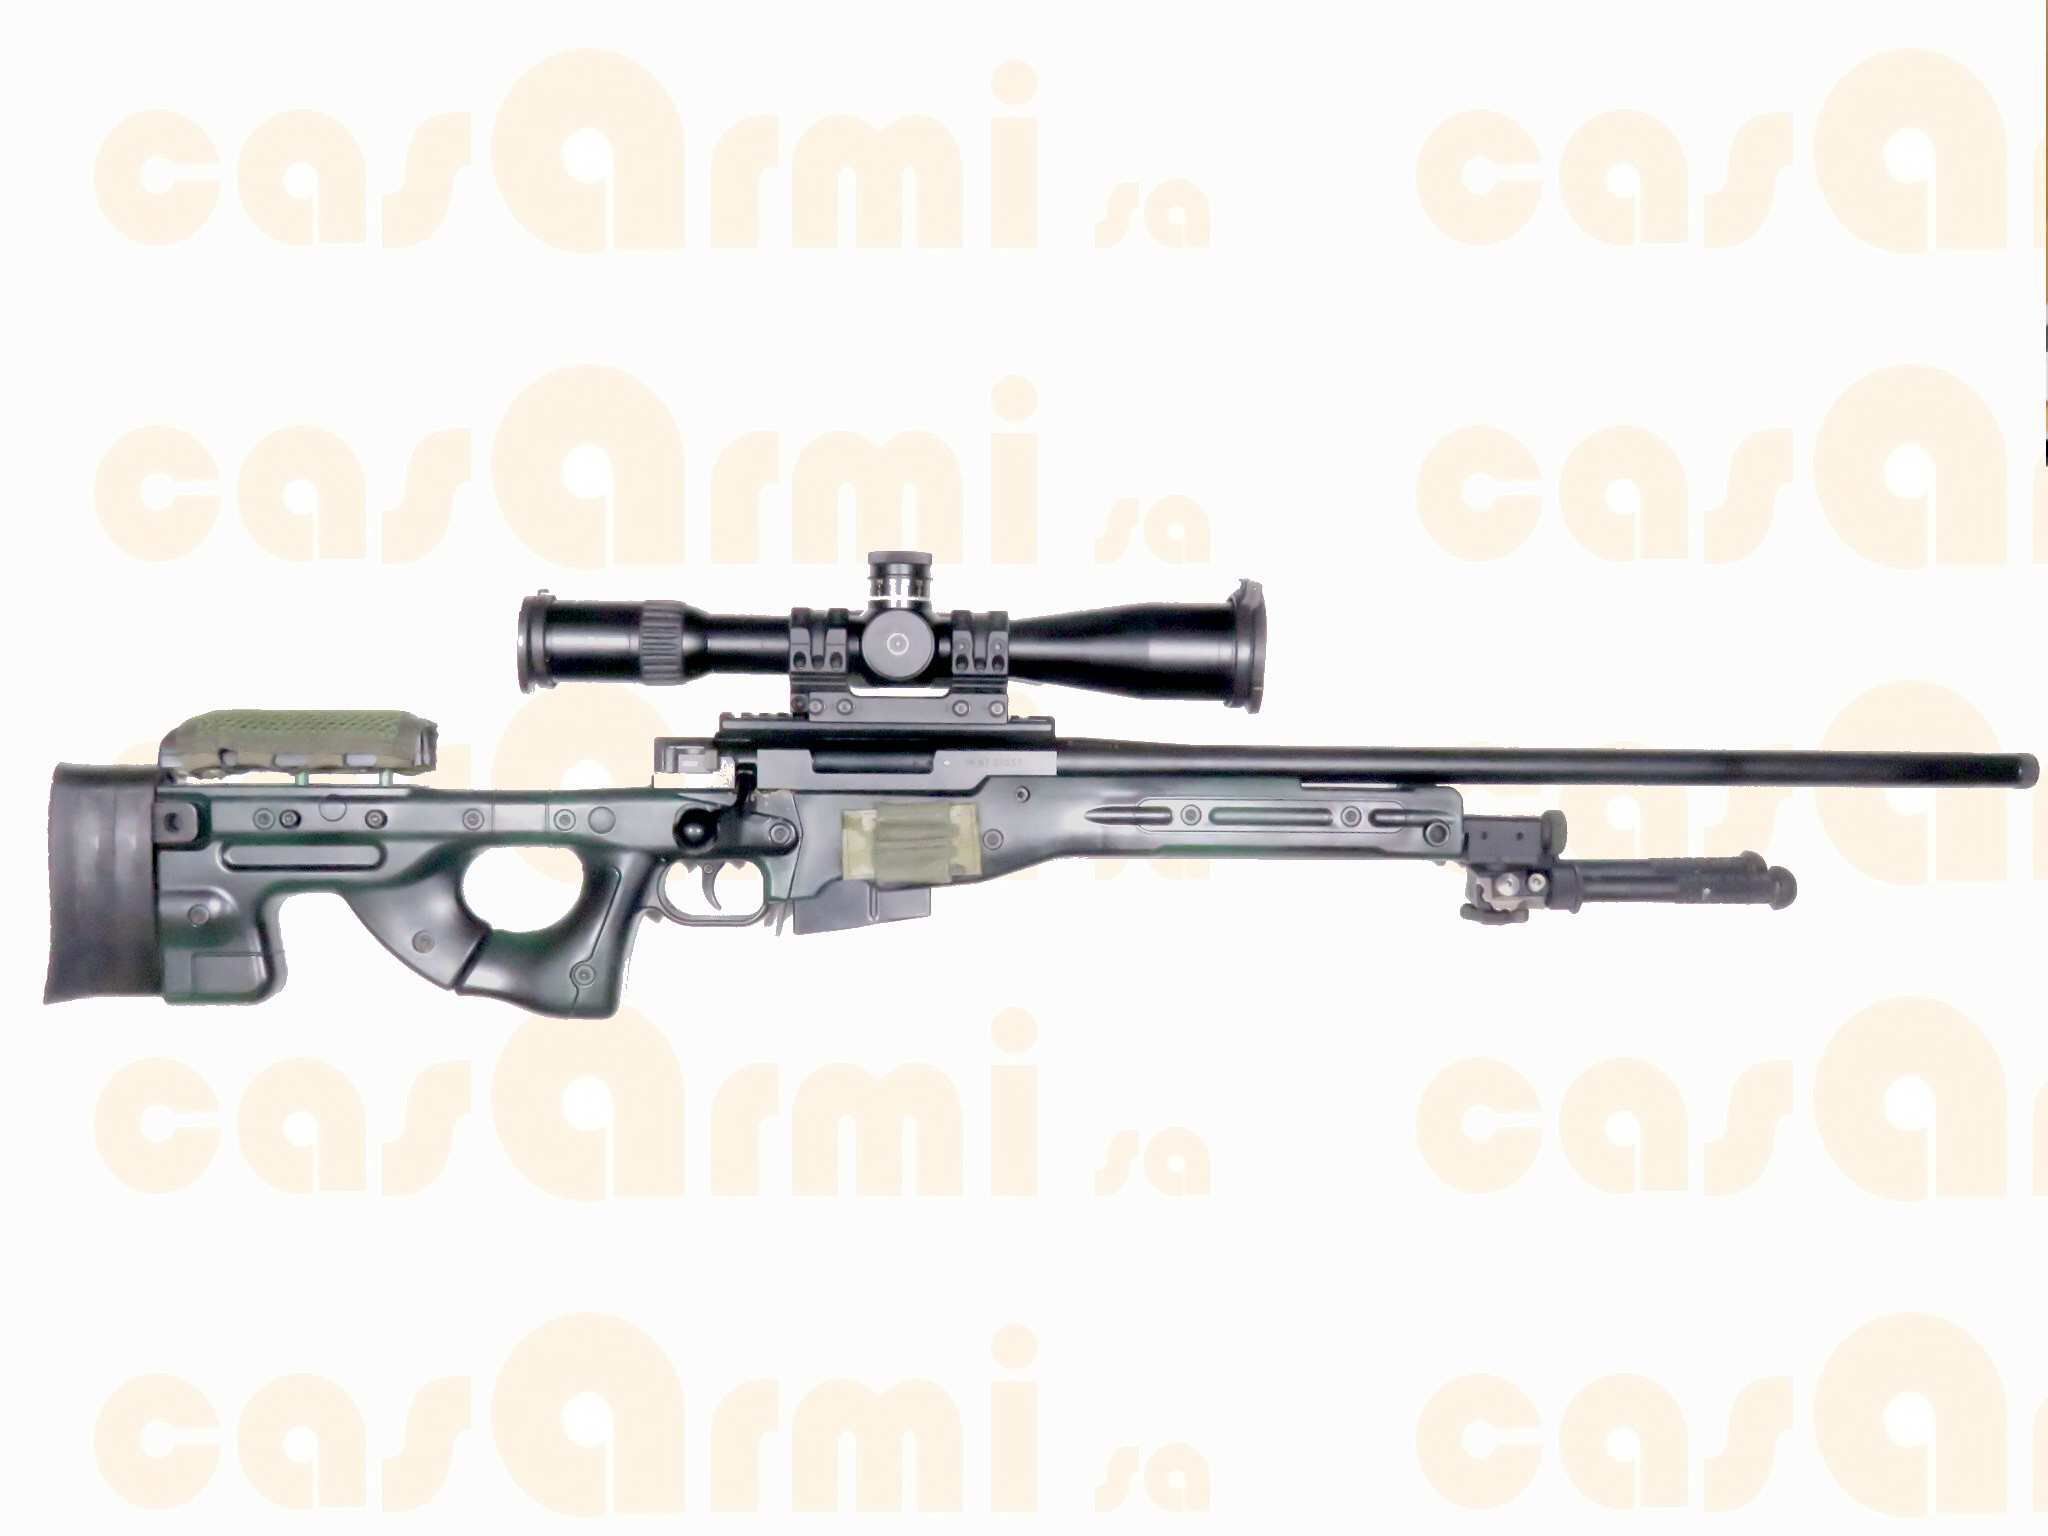 Mod. AT308  ottica S&B PMII 3-20x50  bipiede Atlas  seconda canna in cal. 6.5x47 Lapua